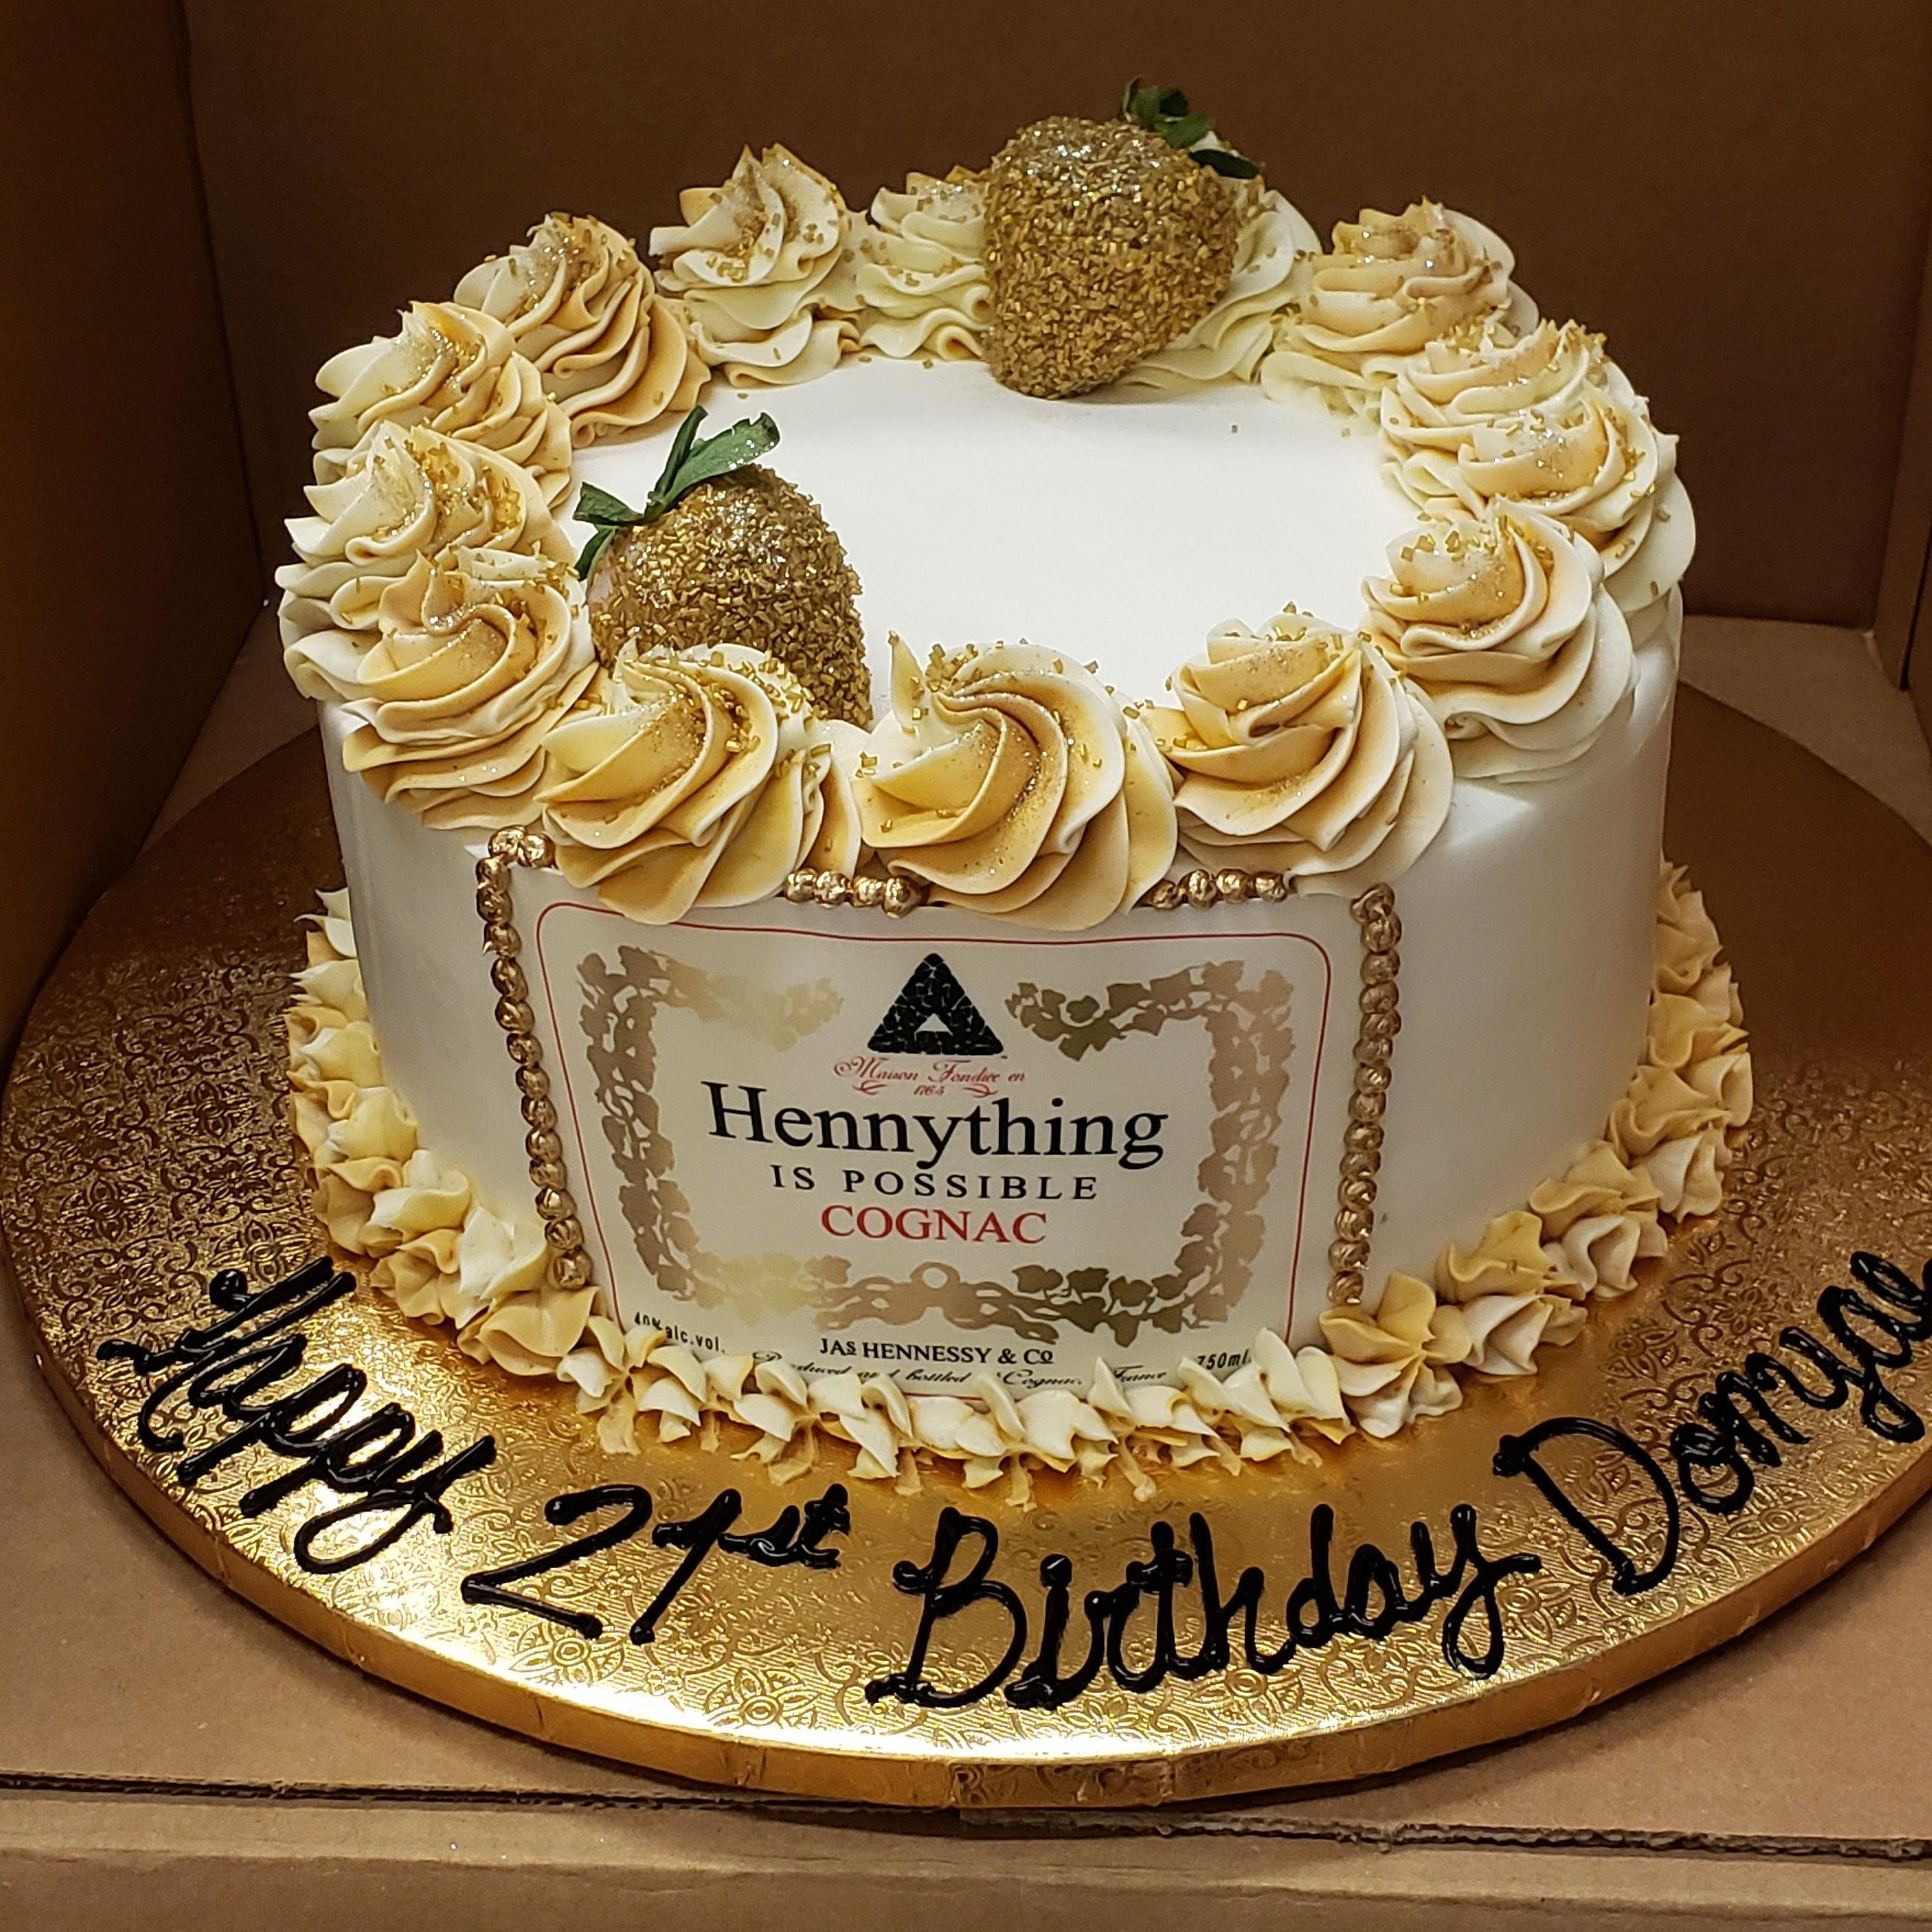 Henneything Is Possible Cake With Gold Strawberries In 2020 Calumet Bakery Themed Cakes Cake